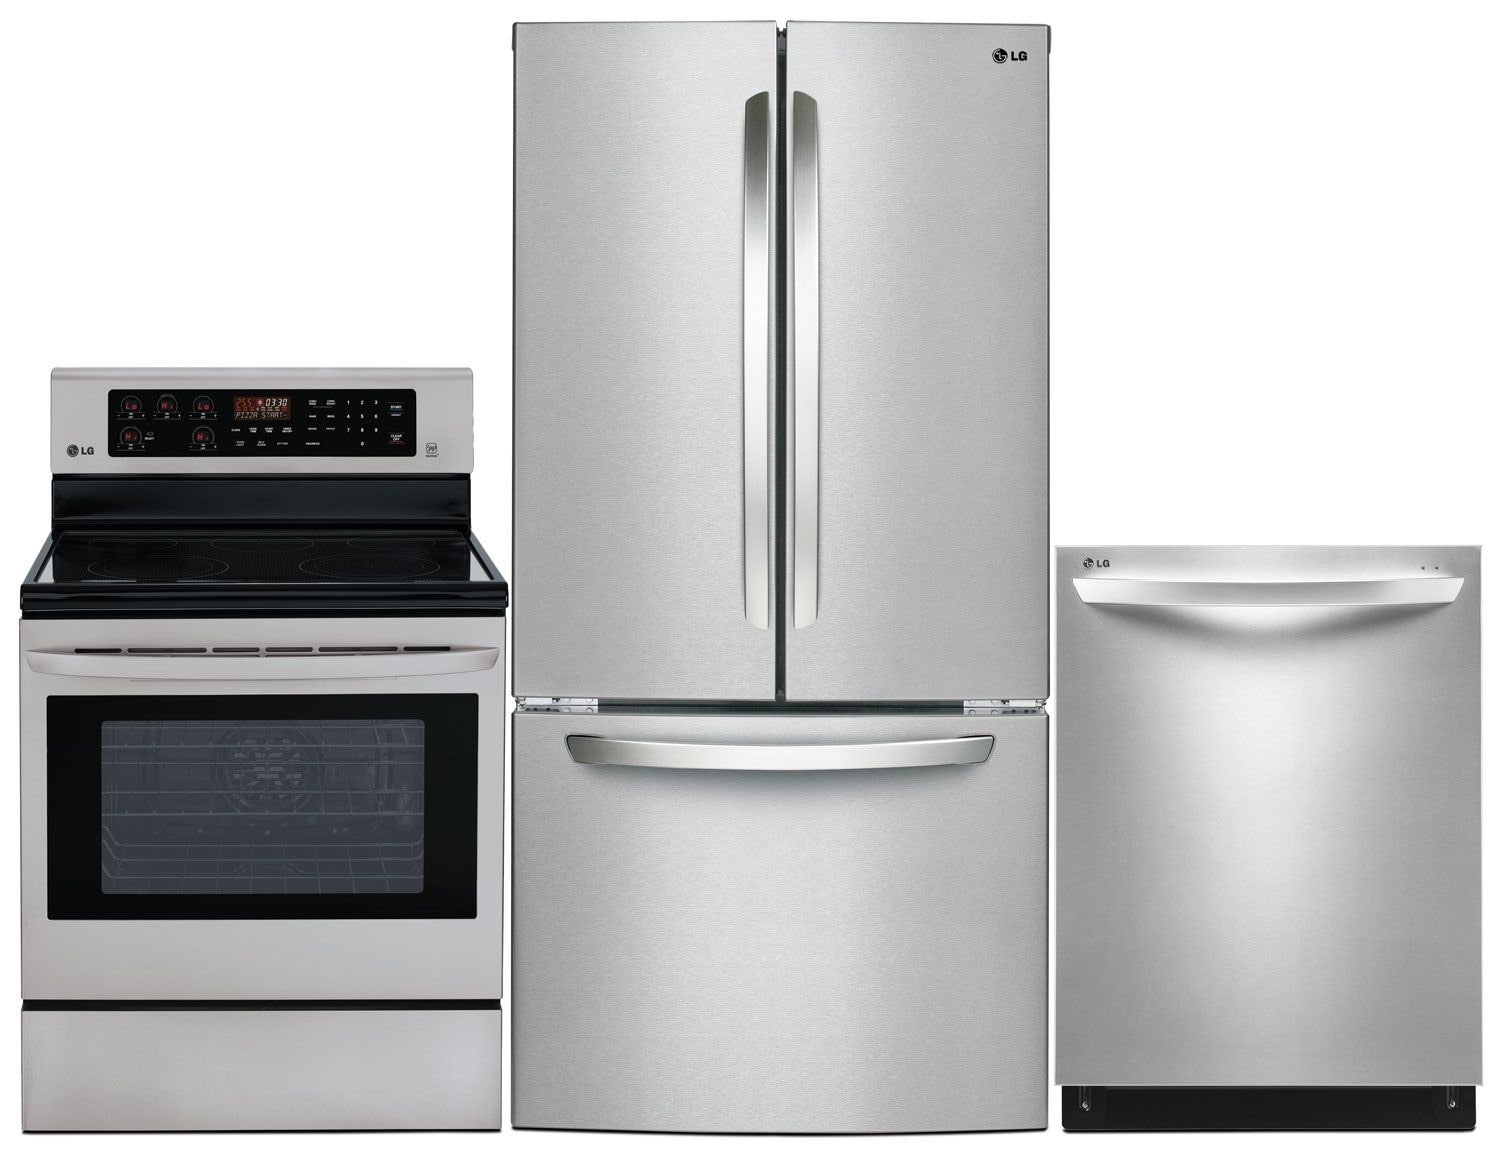 Cooking Products - LG 24 Cu. Ft. Refrigerator, 6.3 Cu. Ft. Electric Range and Built-In Dishwasher